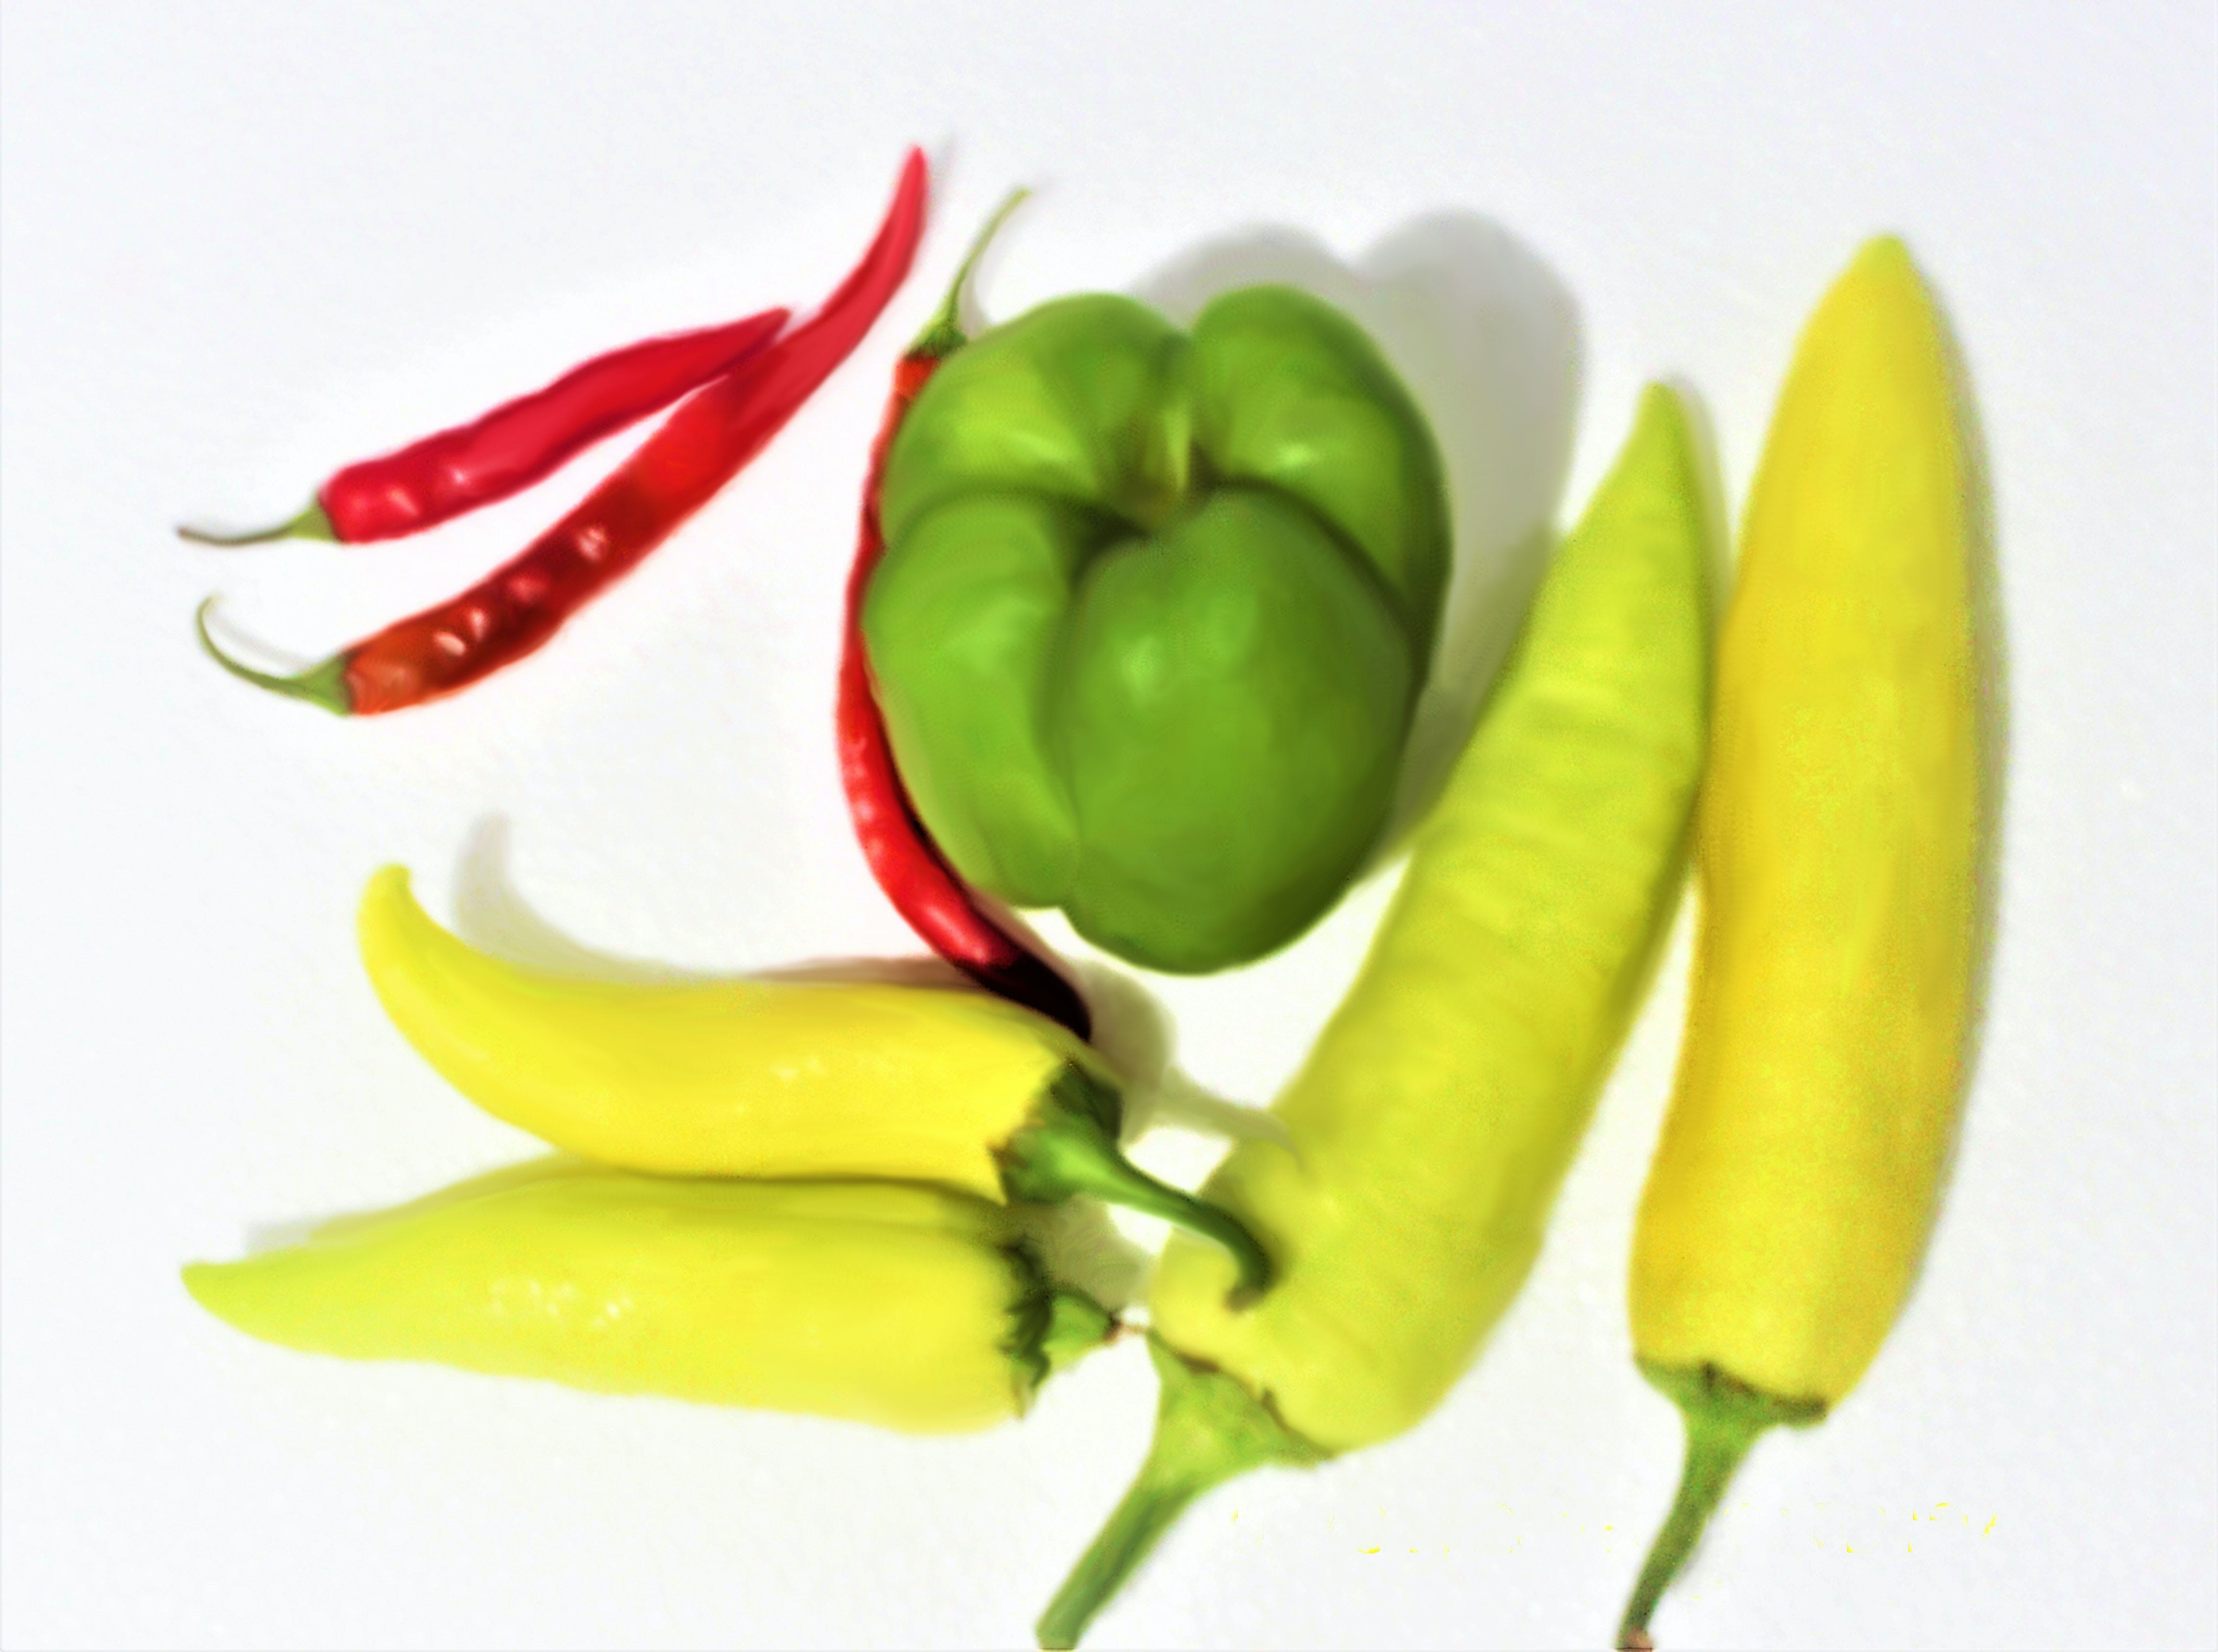 Free stock photo of chillies, green chillies, Red and green chillies, red chillie